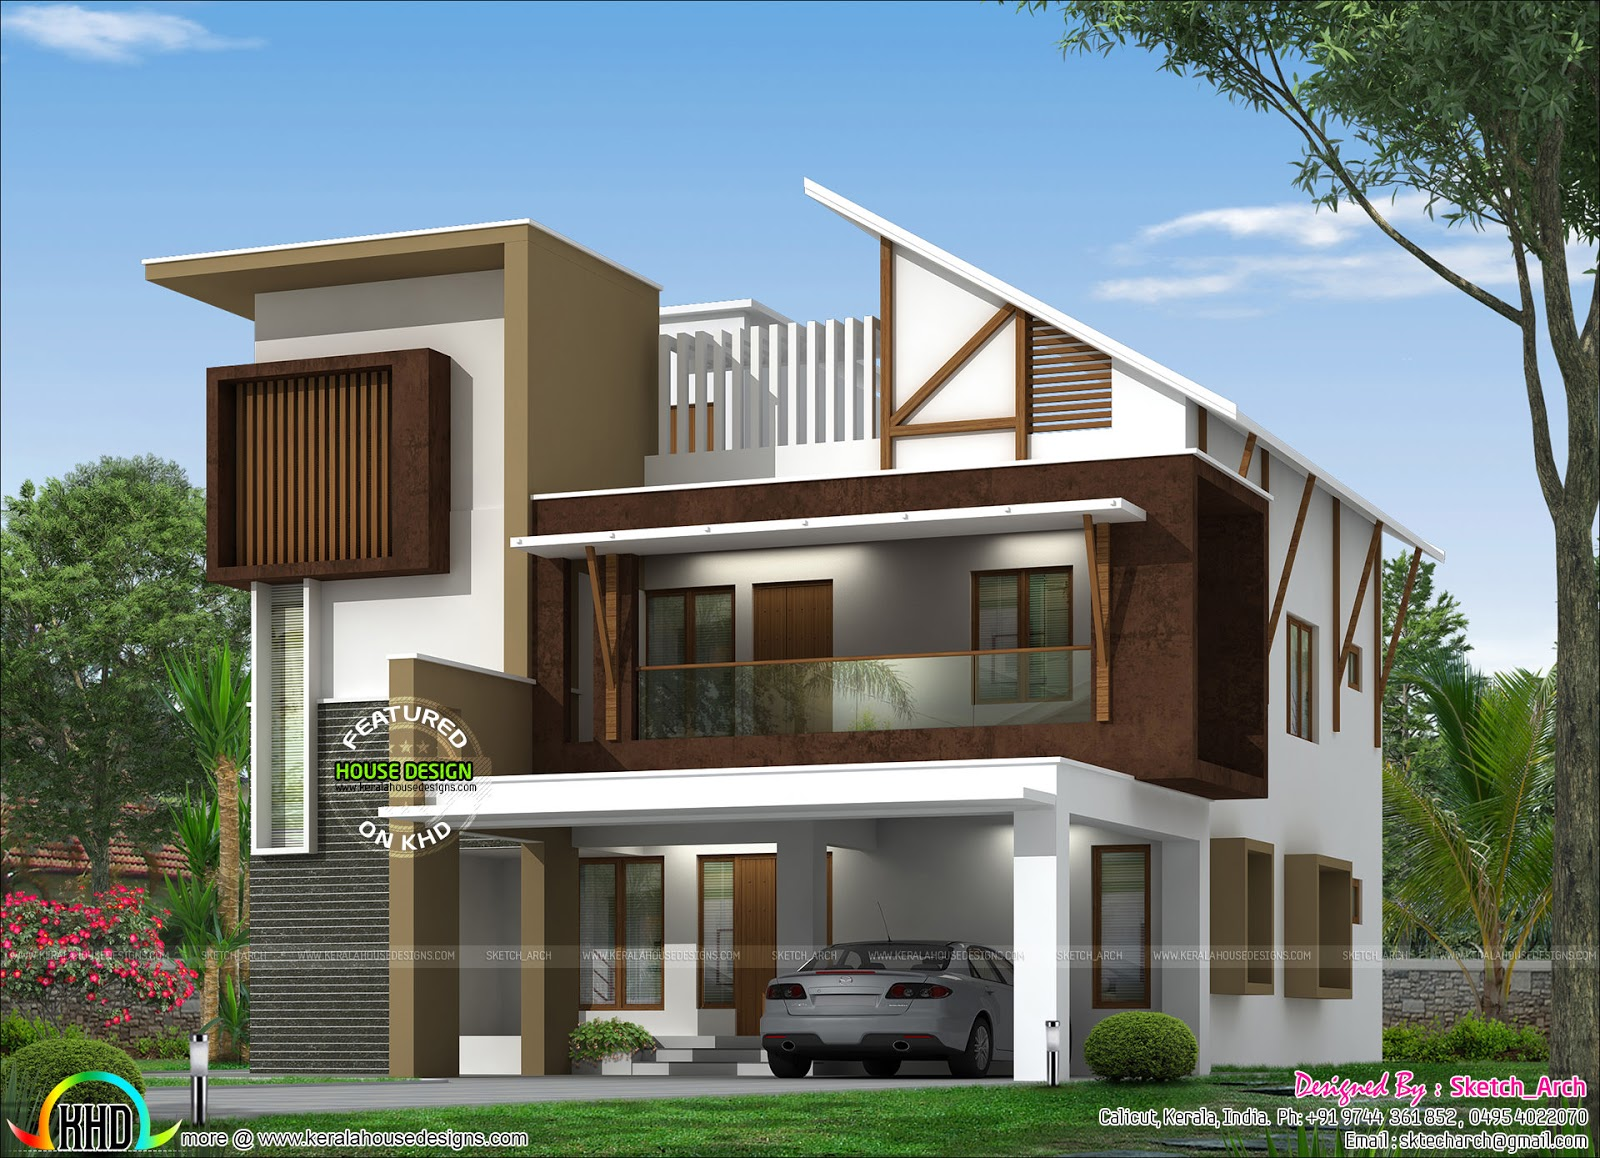 Front Elevation Slanting Roof Design : Modern slanting roof home kerala design and floor plans